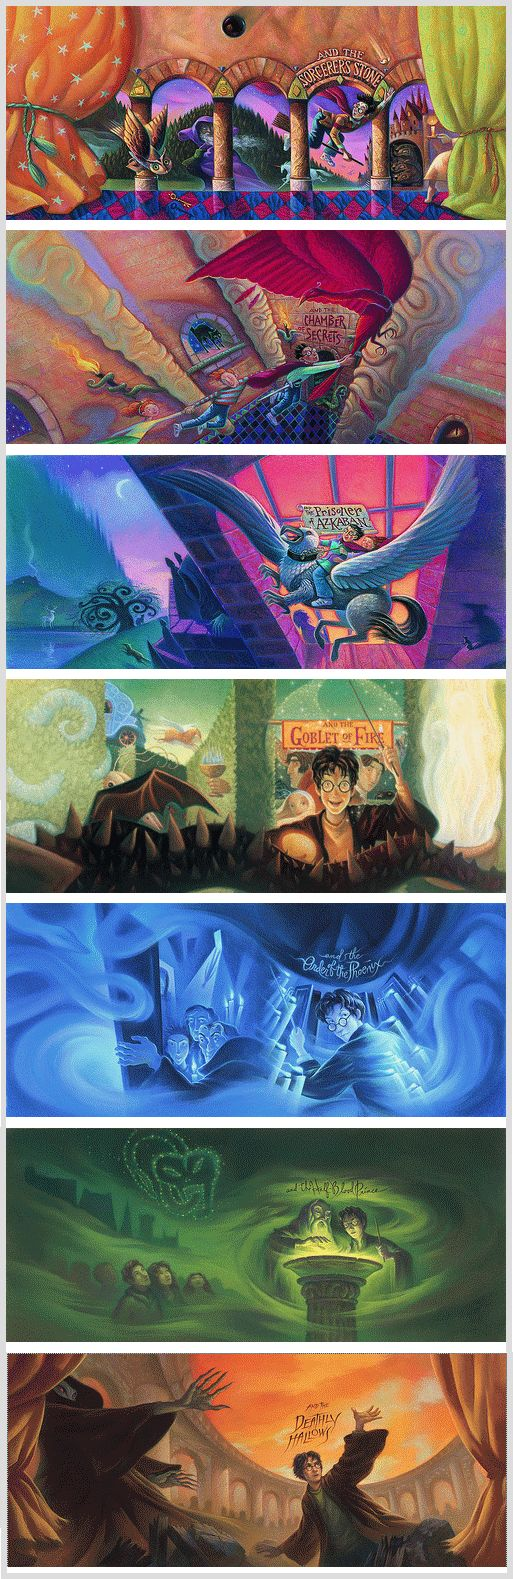 Have to pin this and save it somewhere. It is so great! Harry Potter book covers by Mary GrandPré, original American editions